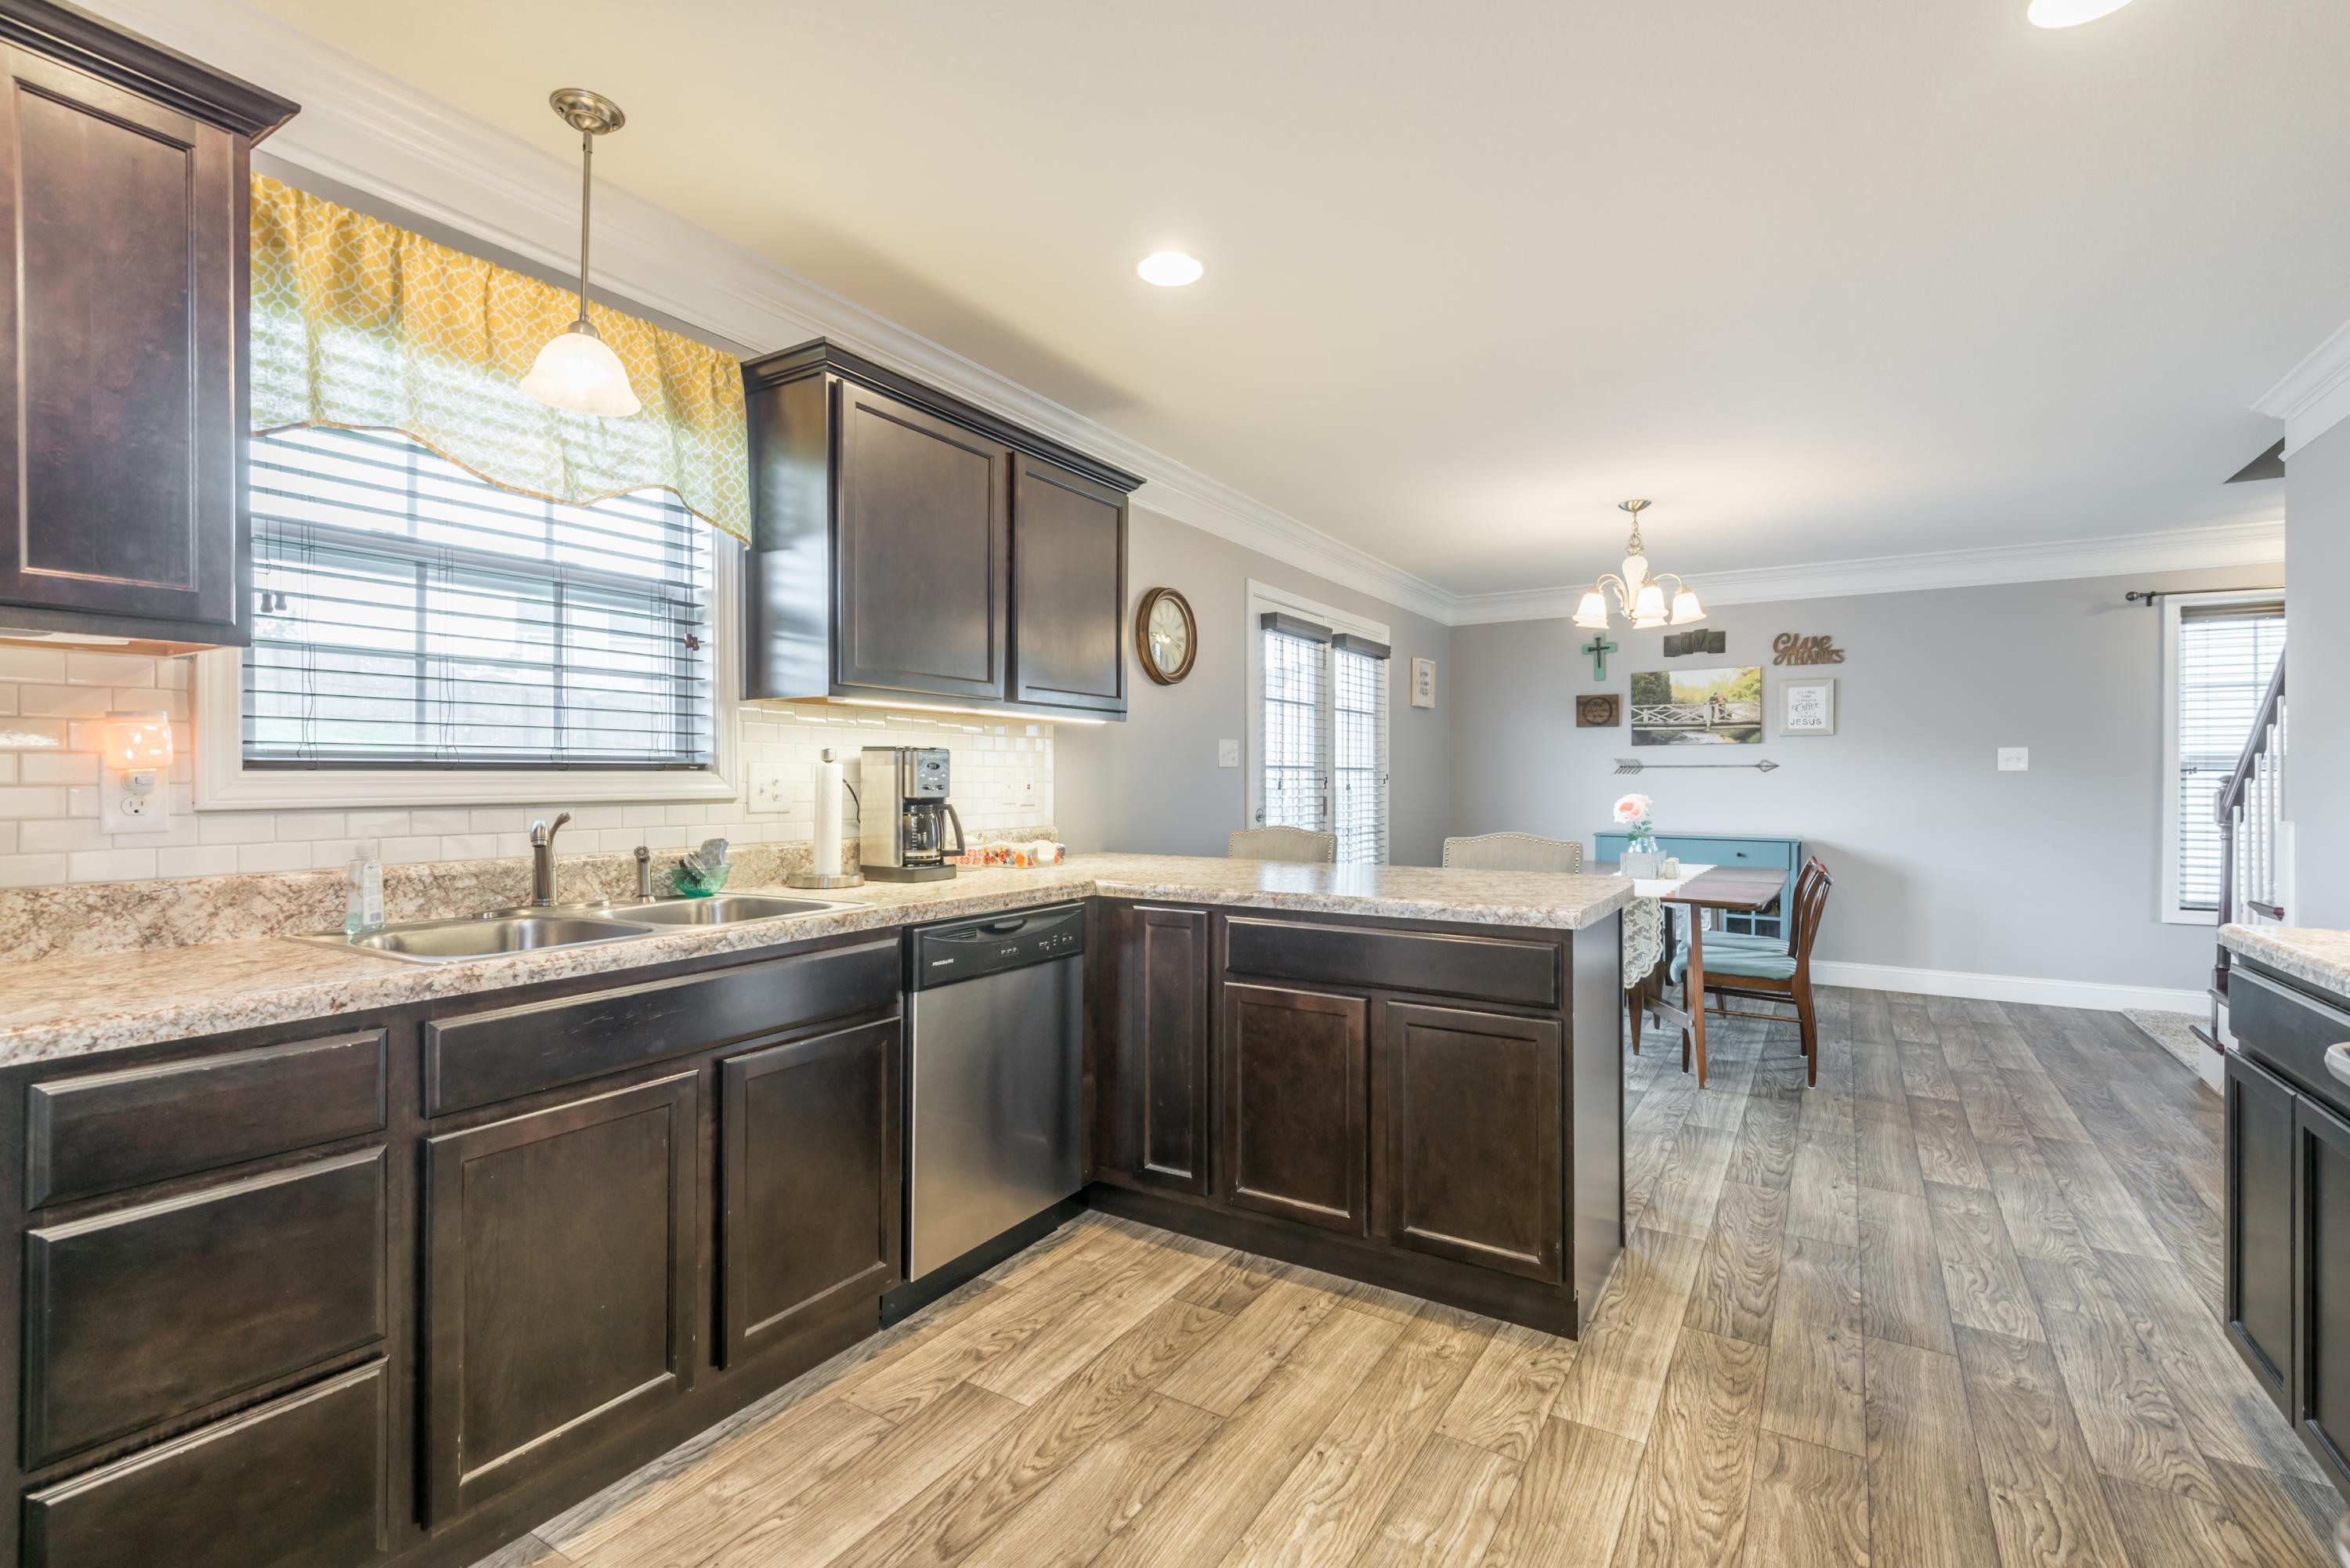 knox hardwood flooring co knoxville tn of listing 1815 point wood drive knoxville tn mls 1055936 in property photo